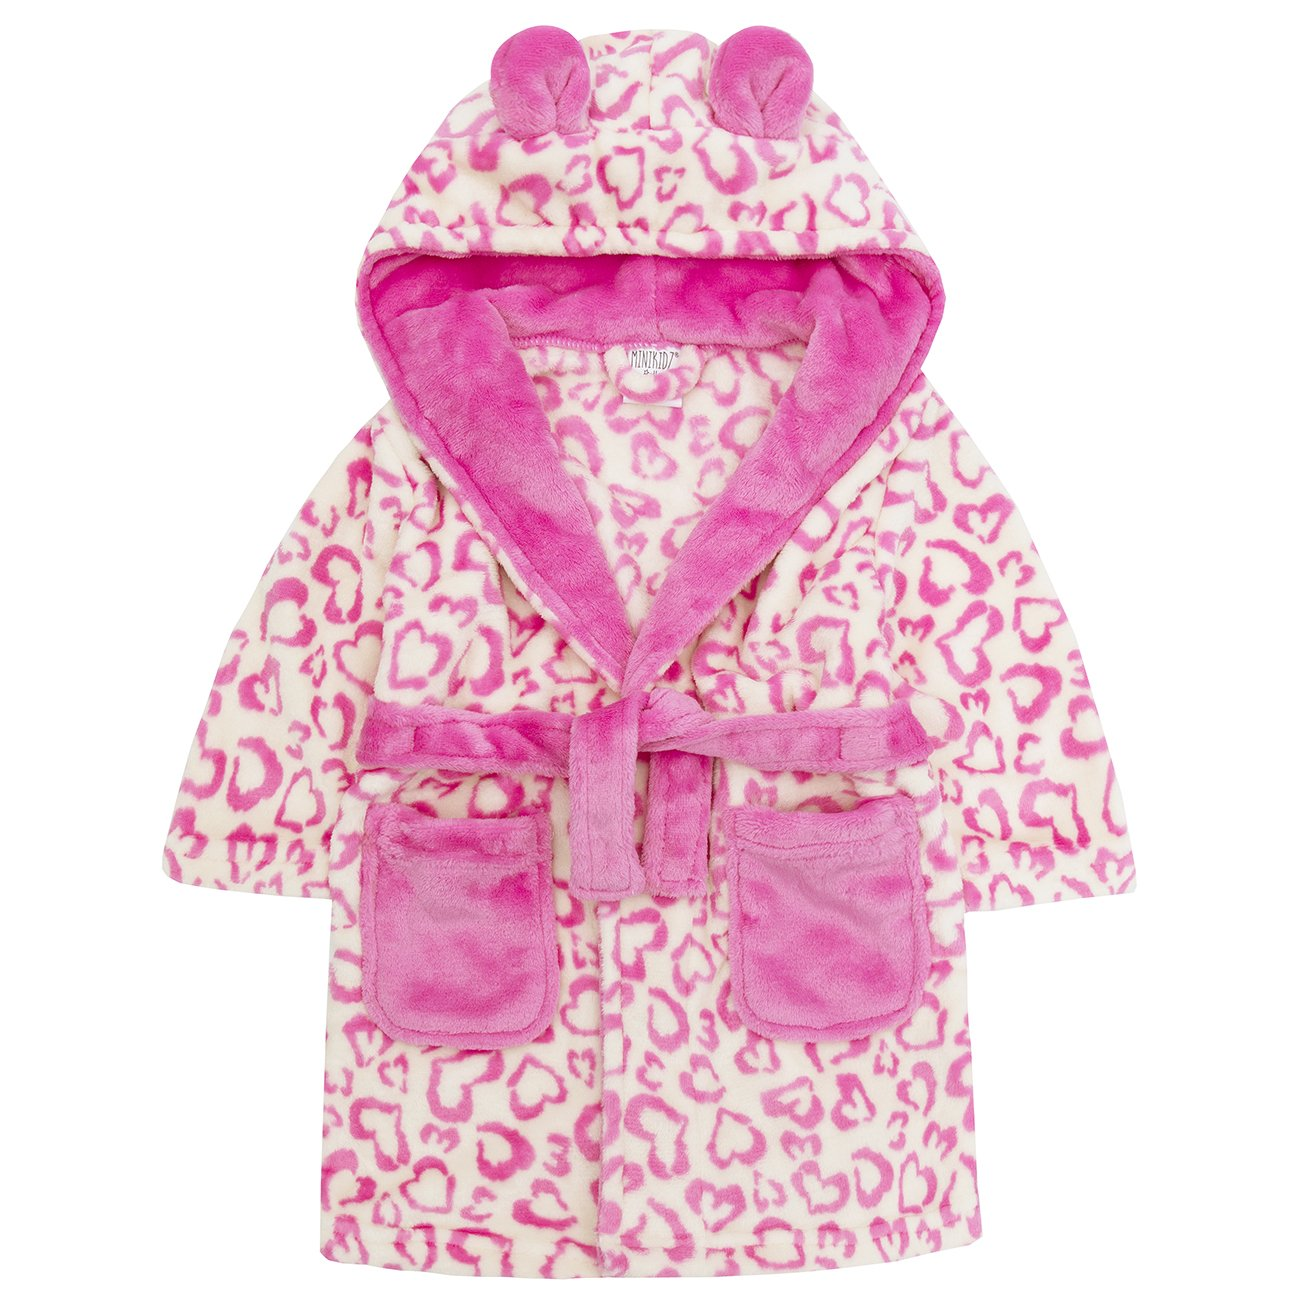 MiniKidz Childrens Heart Print Soft Fleece Hooded Dressing Gown ~ 2-13 Years